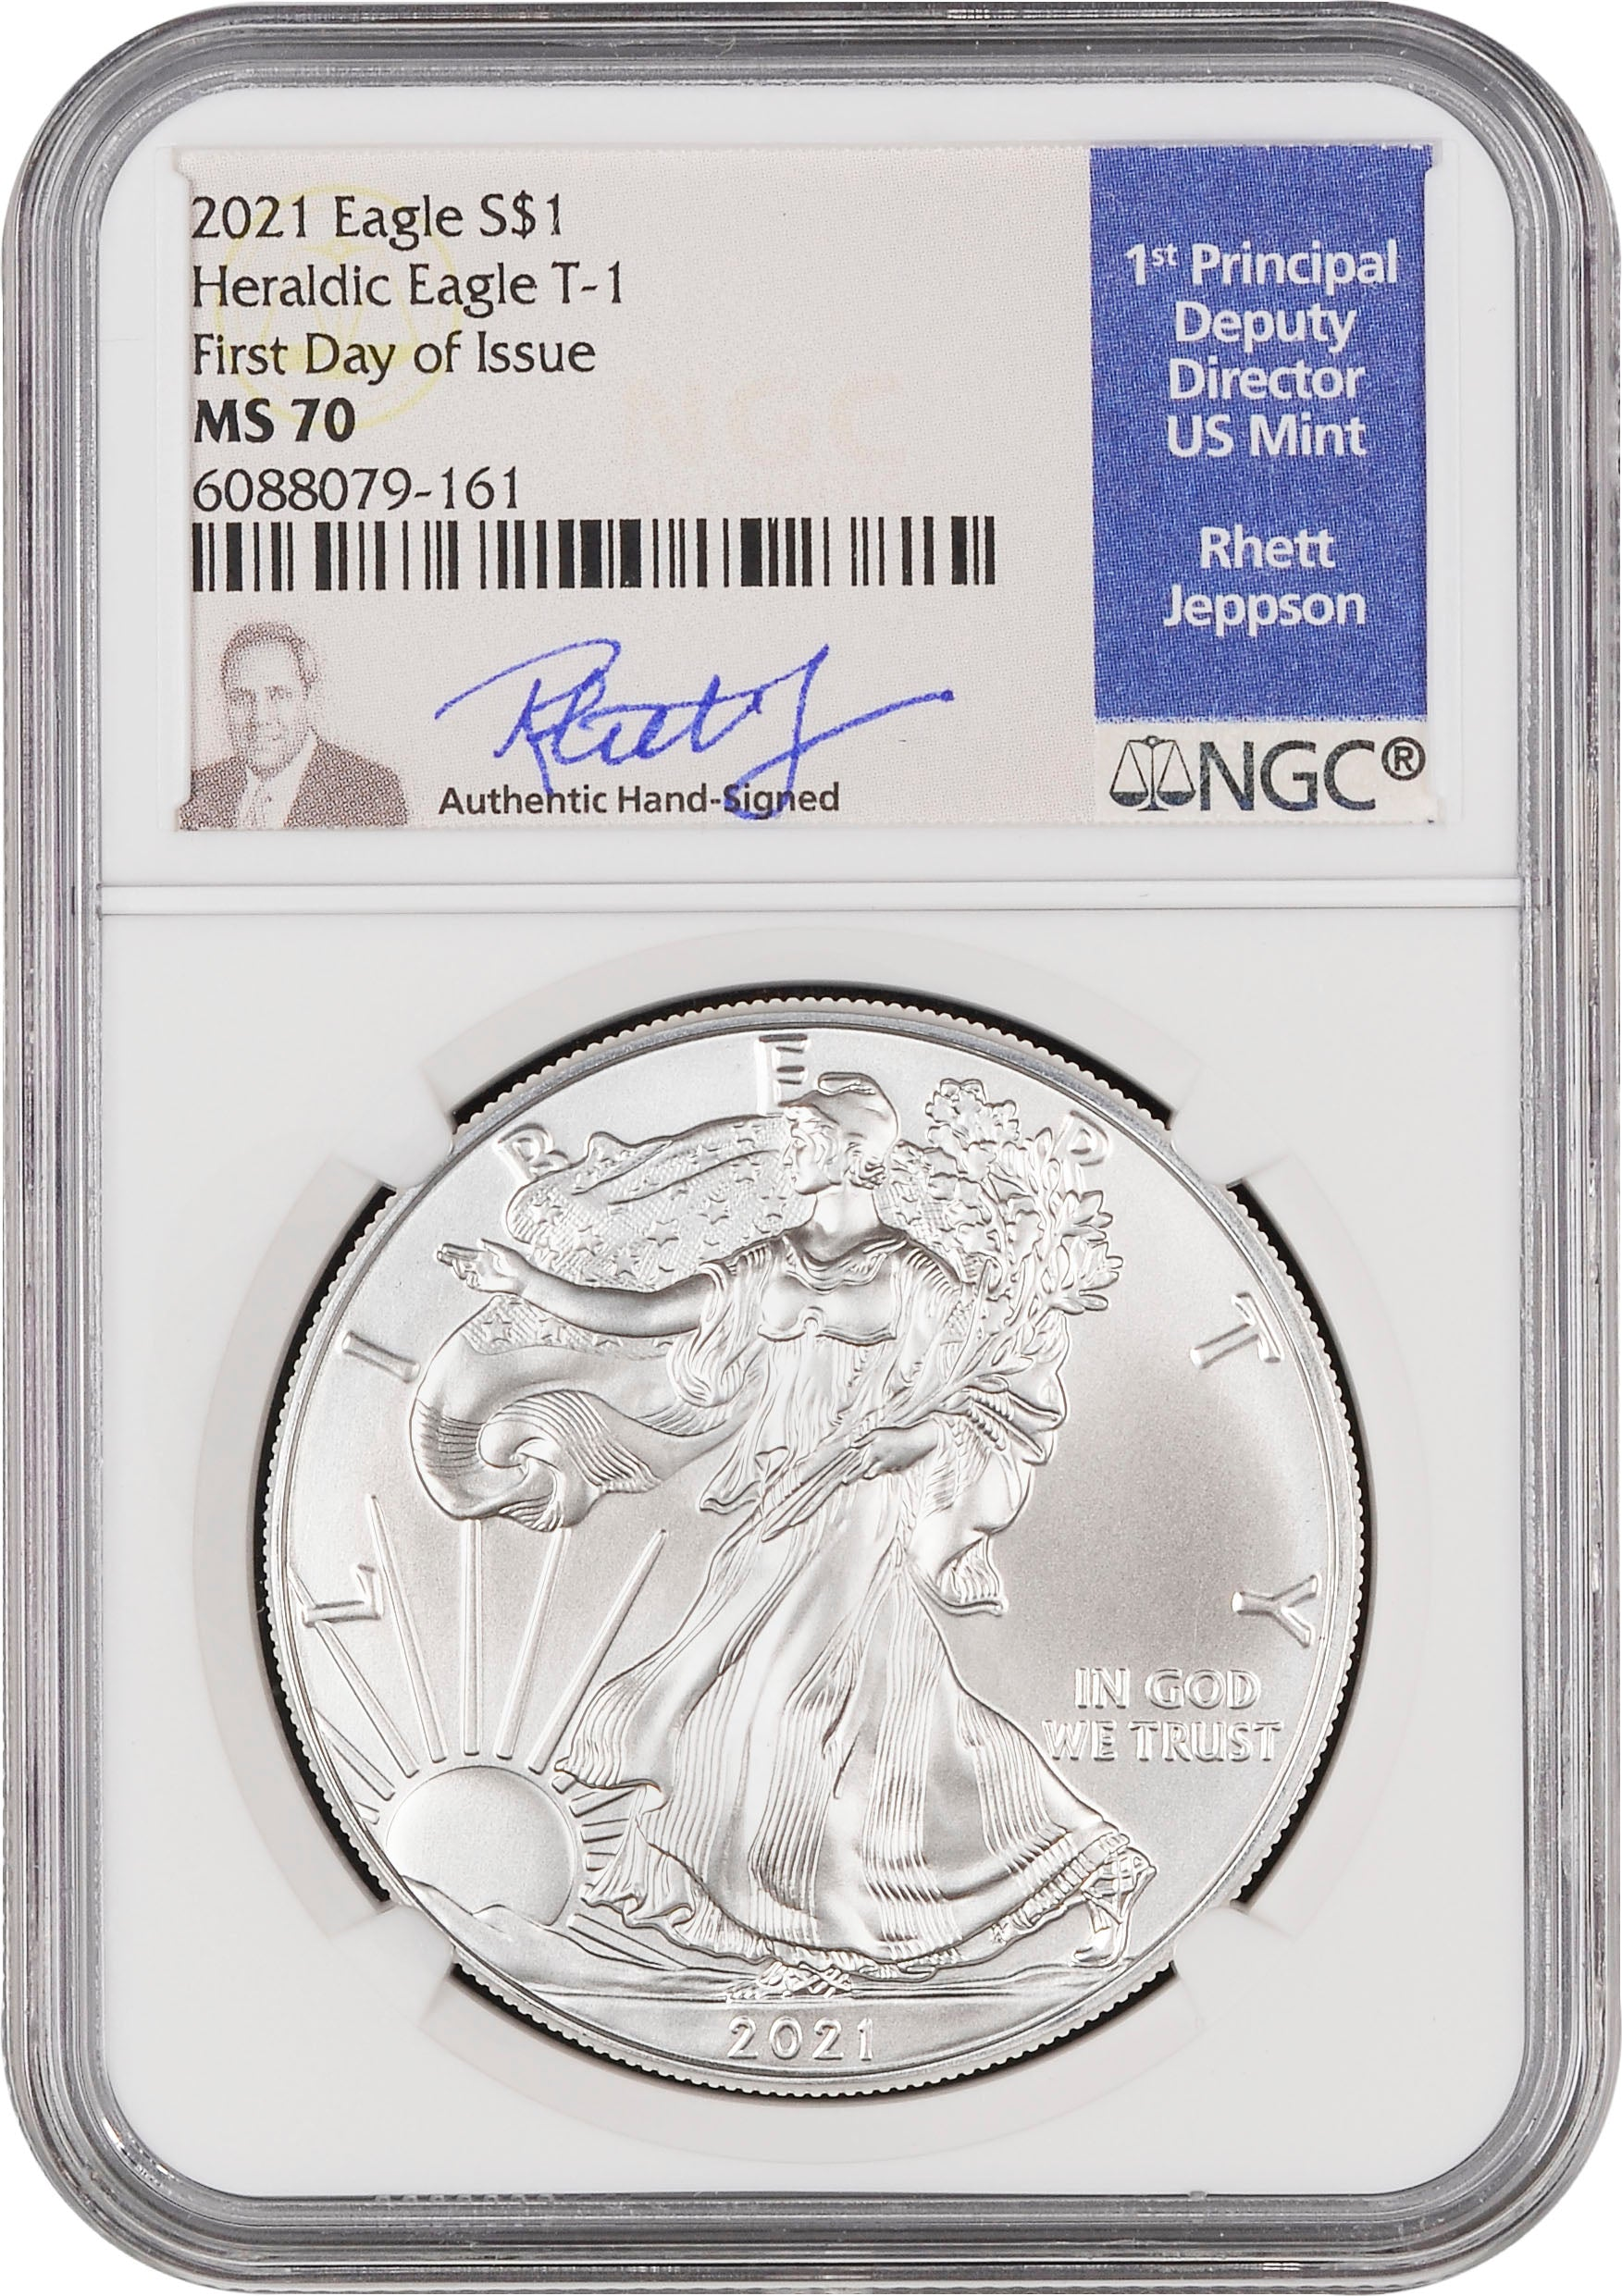 2021 Silver Eagle - Business Strike - Type 1 - NGC MS70 FDOI First Day of Issue R Jepson Signature Label